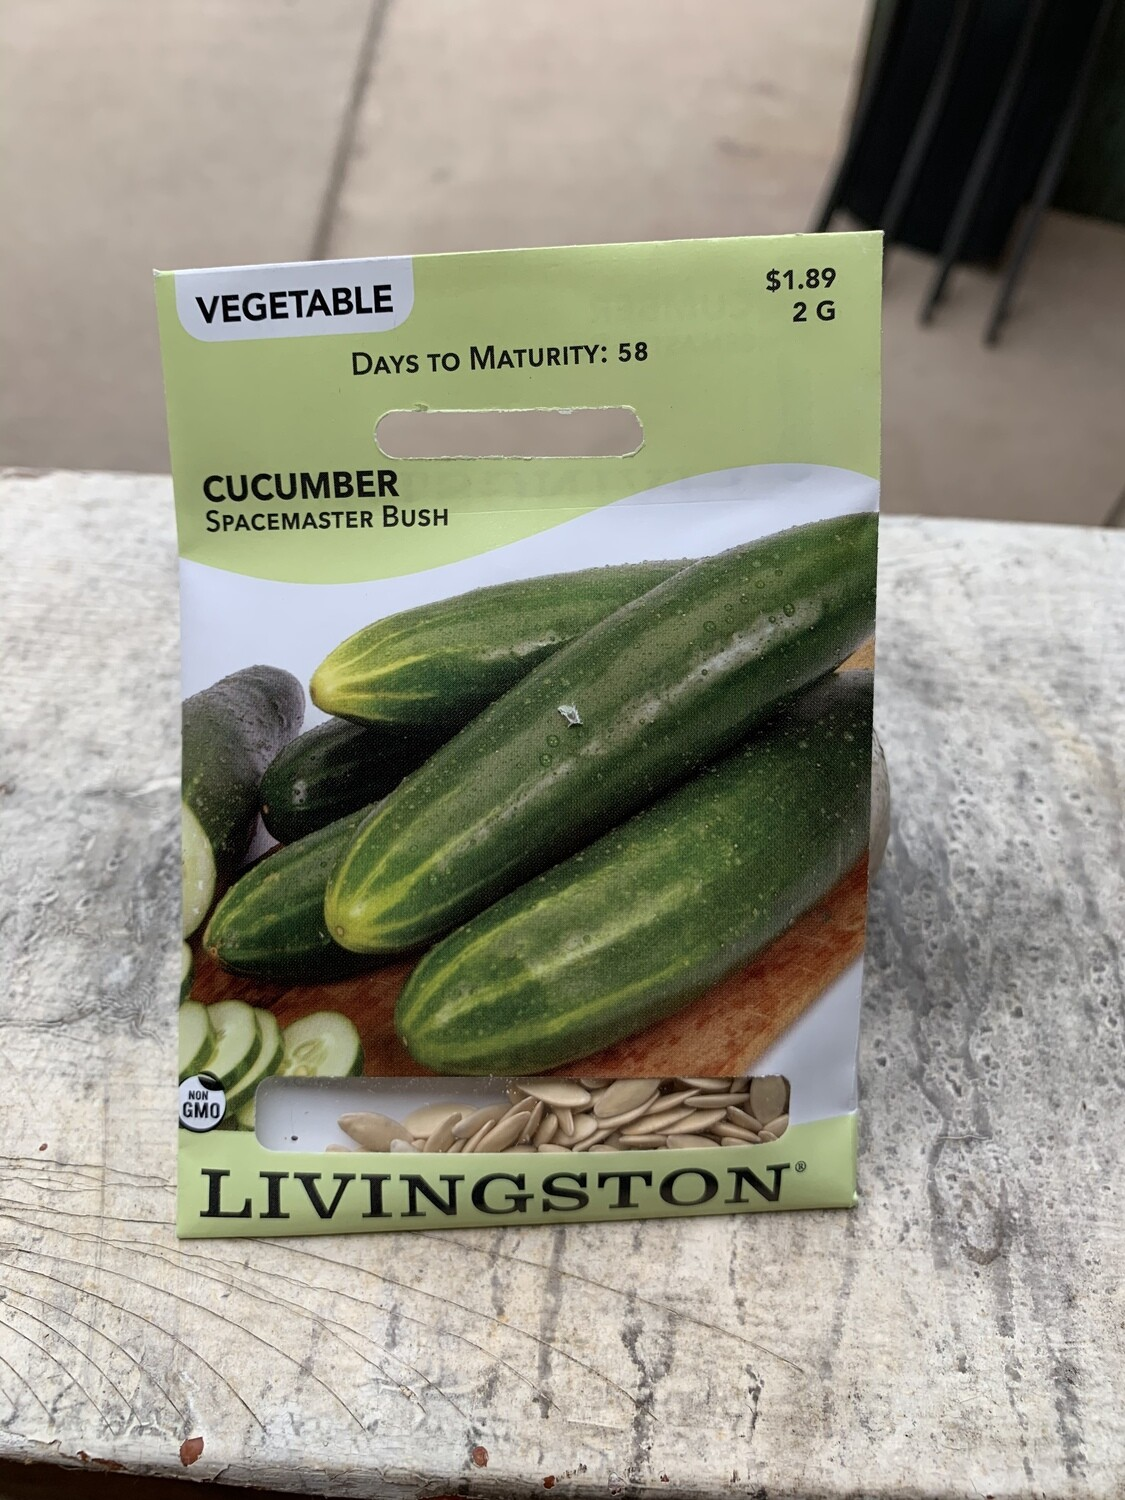 Cucumber Spacemaster Bush (Seed) $1.89